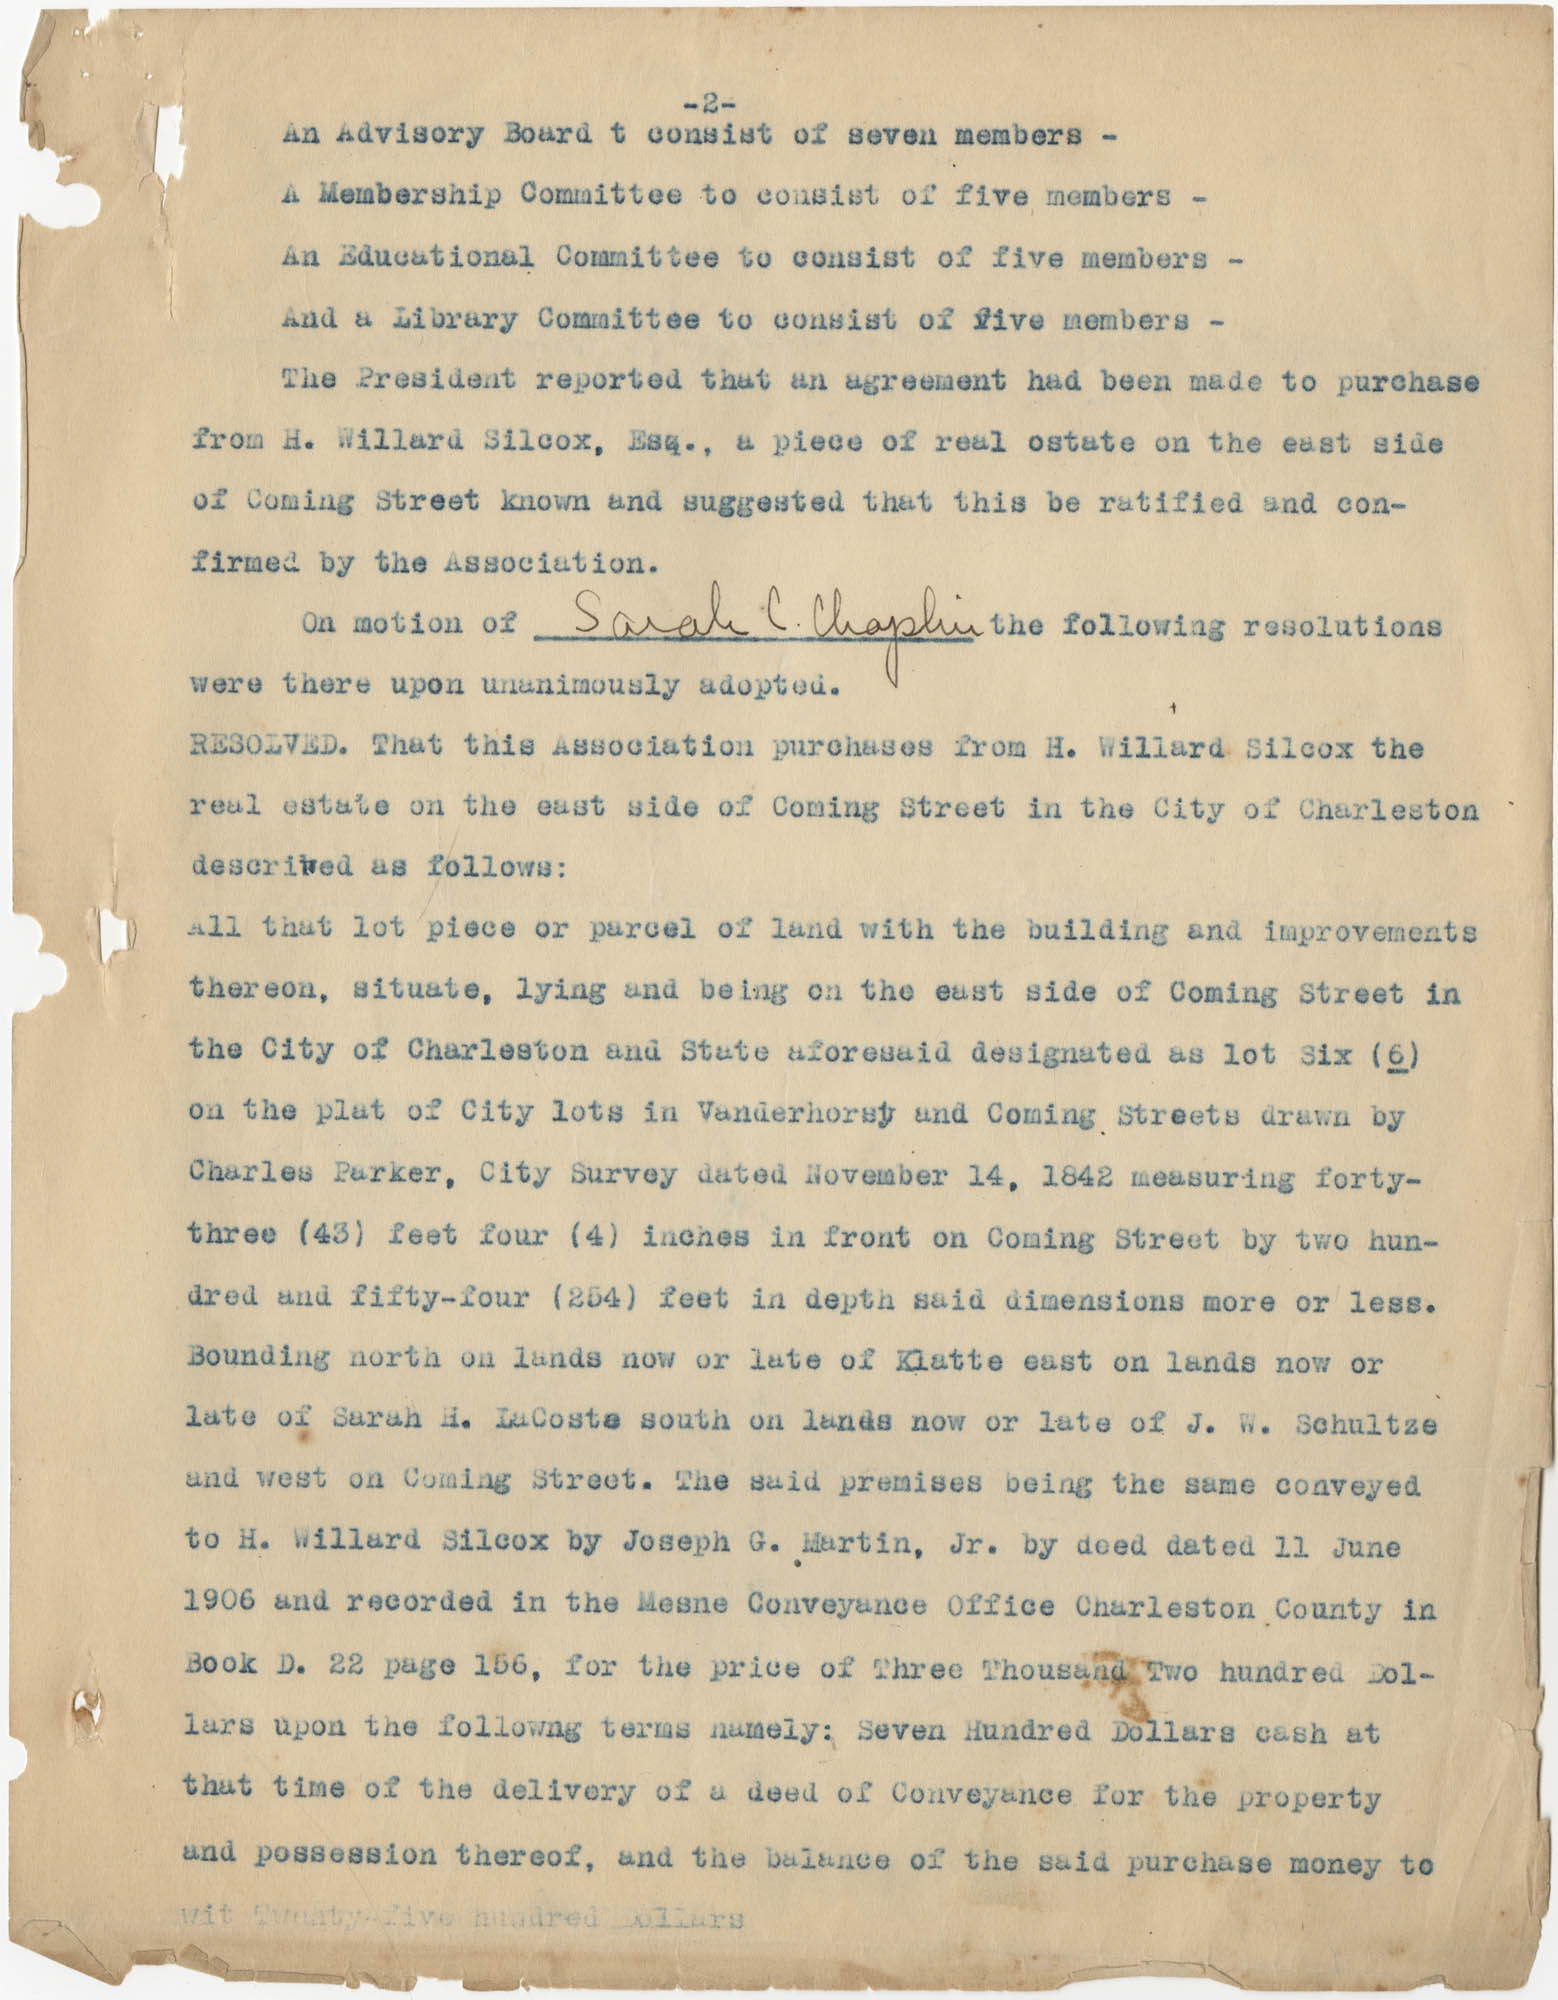 Minutes to the Coming Street Y.W.C.A. Meeting, January 23, 1911, Page 2